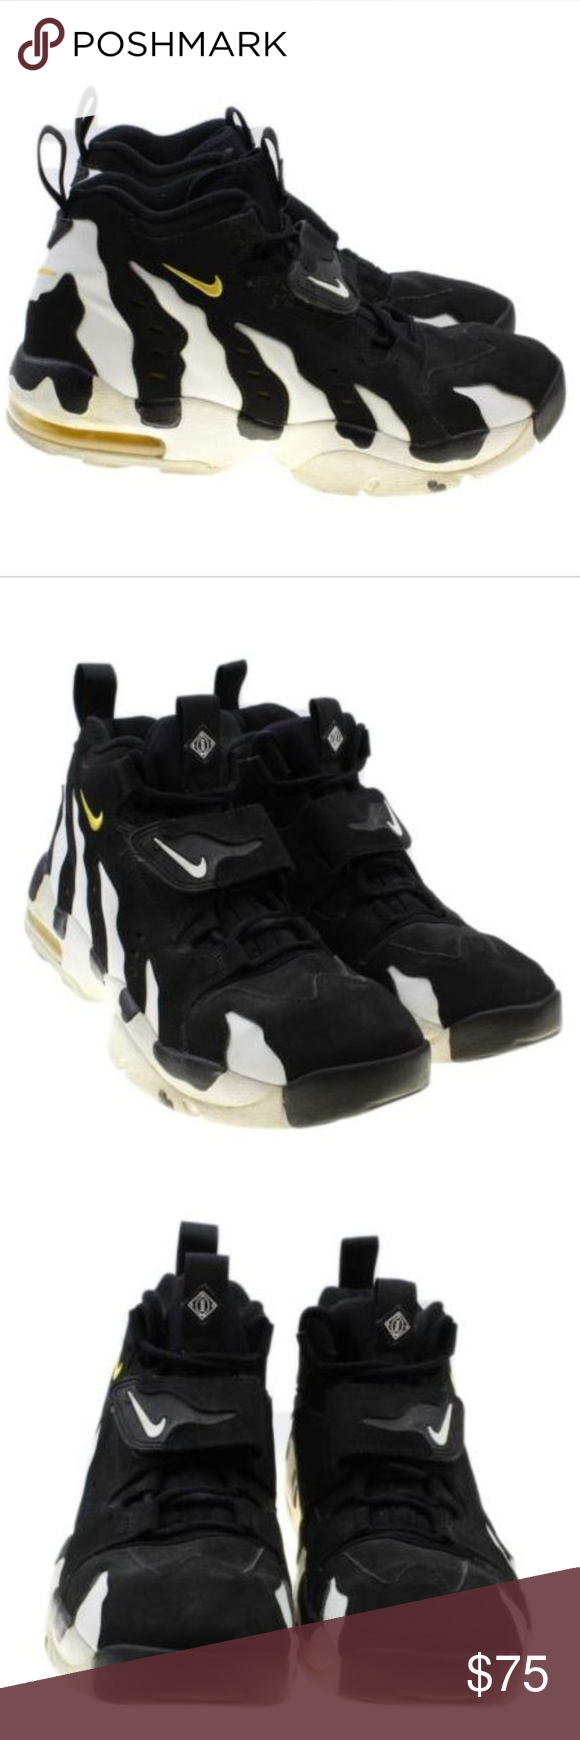 best cheap 8b58b cae7c Nike Air DT Max 96 Deion Sanders 316408-003 Nike Air DT Max 96 Deion  Sanders 316408-003 Black White Varsity Maize Speed Turf Size 11.5 In great  condition ...